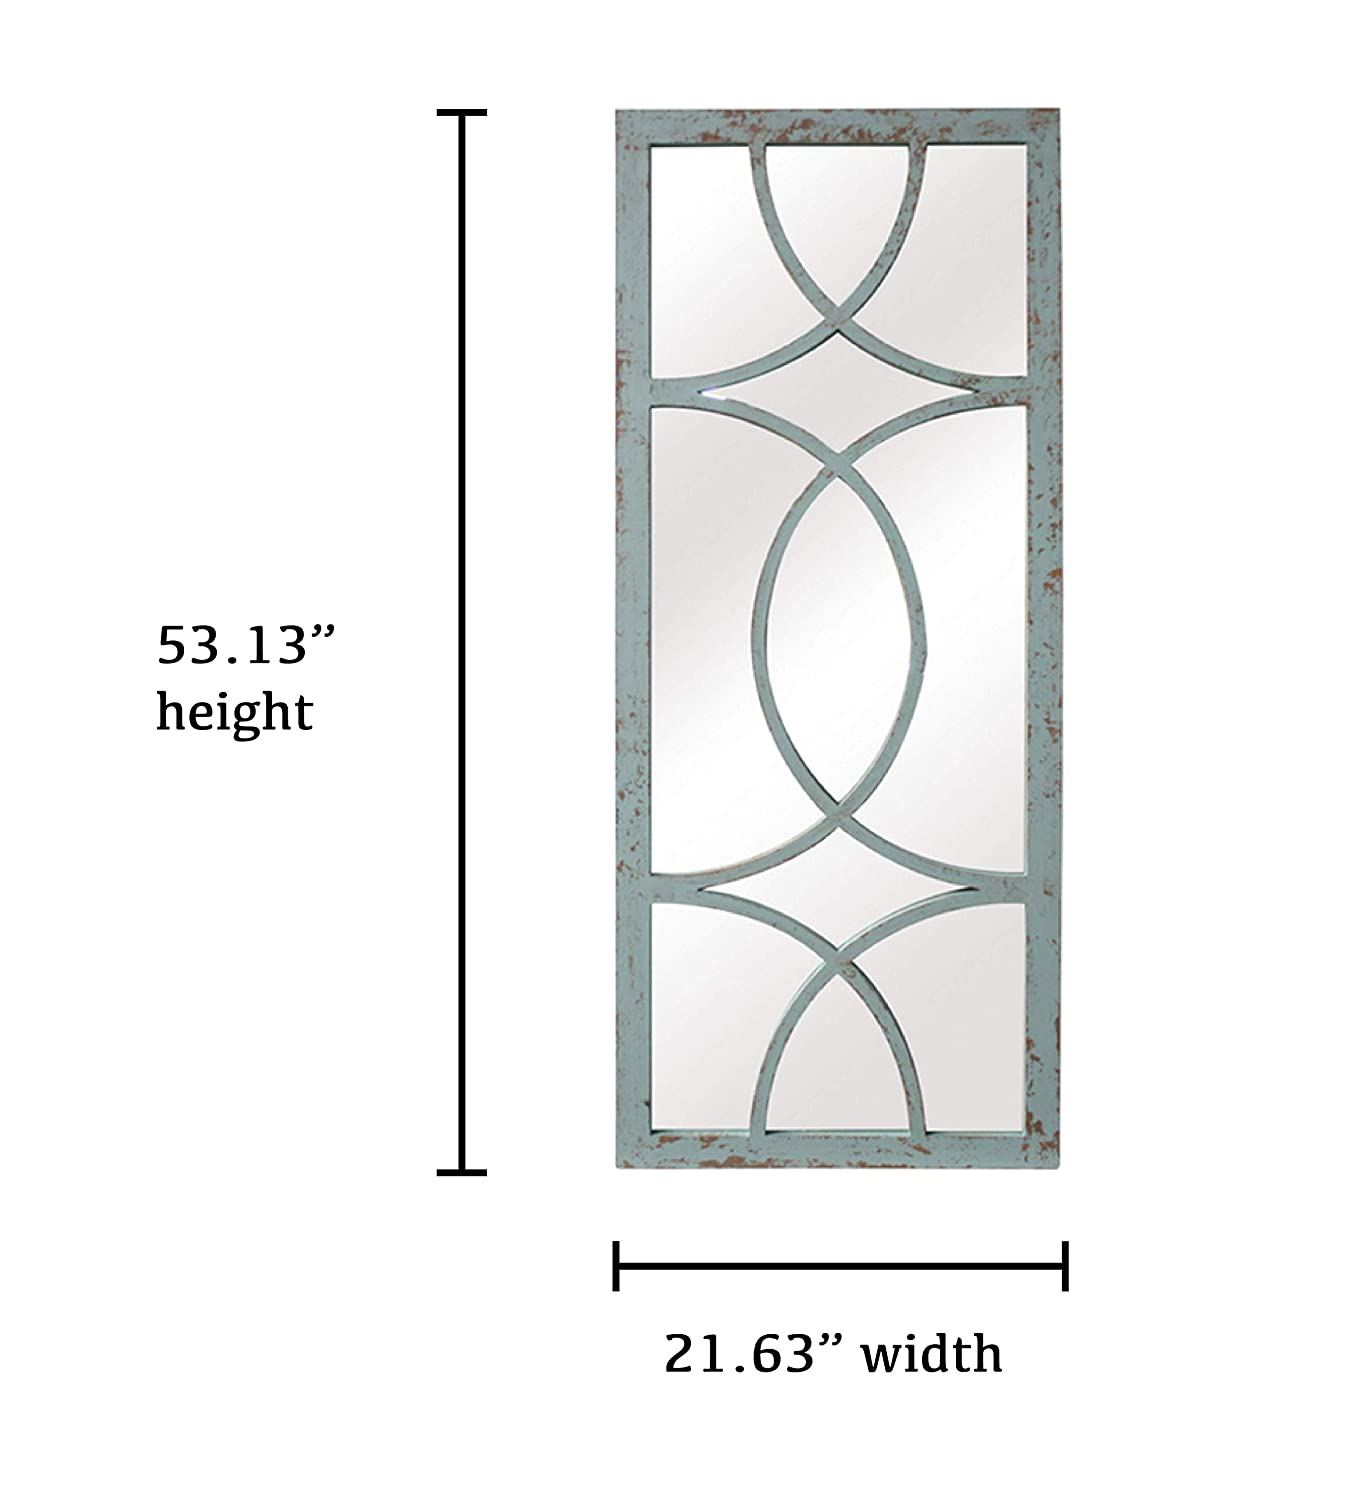 Amazon.com: SBC decoración Jardin círculo Panel de ventana ...